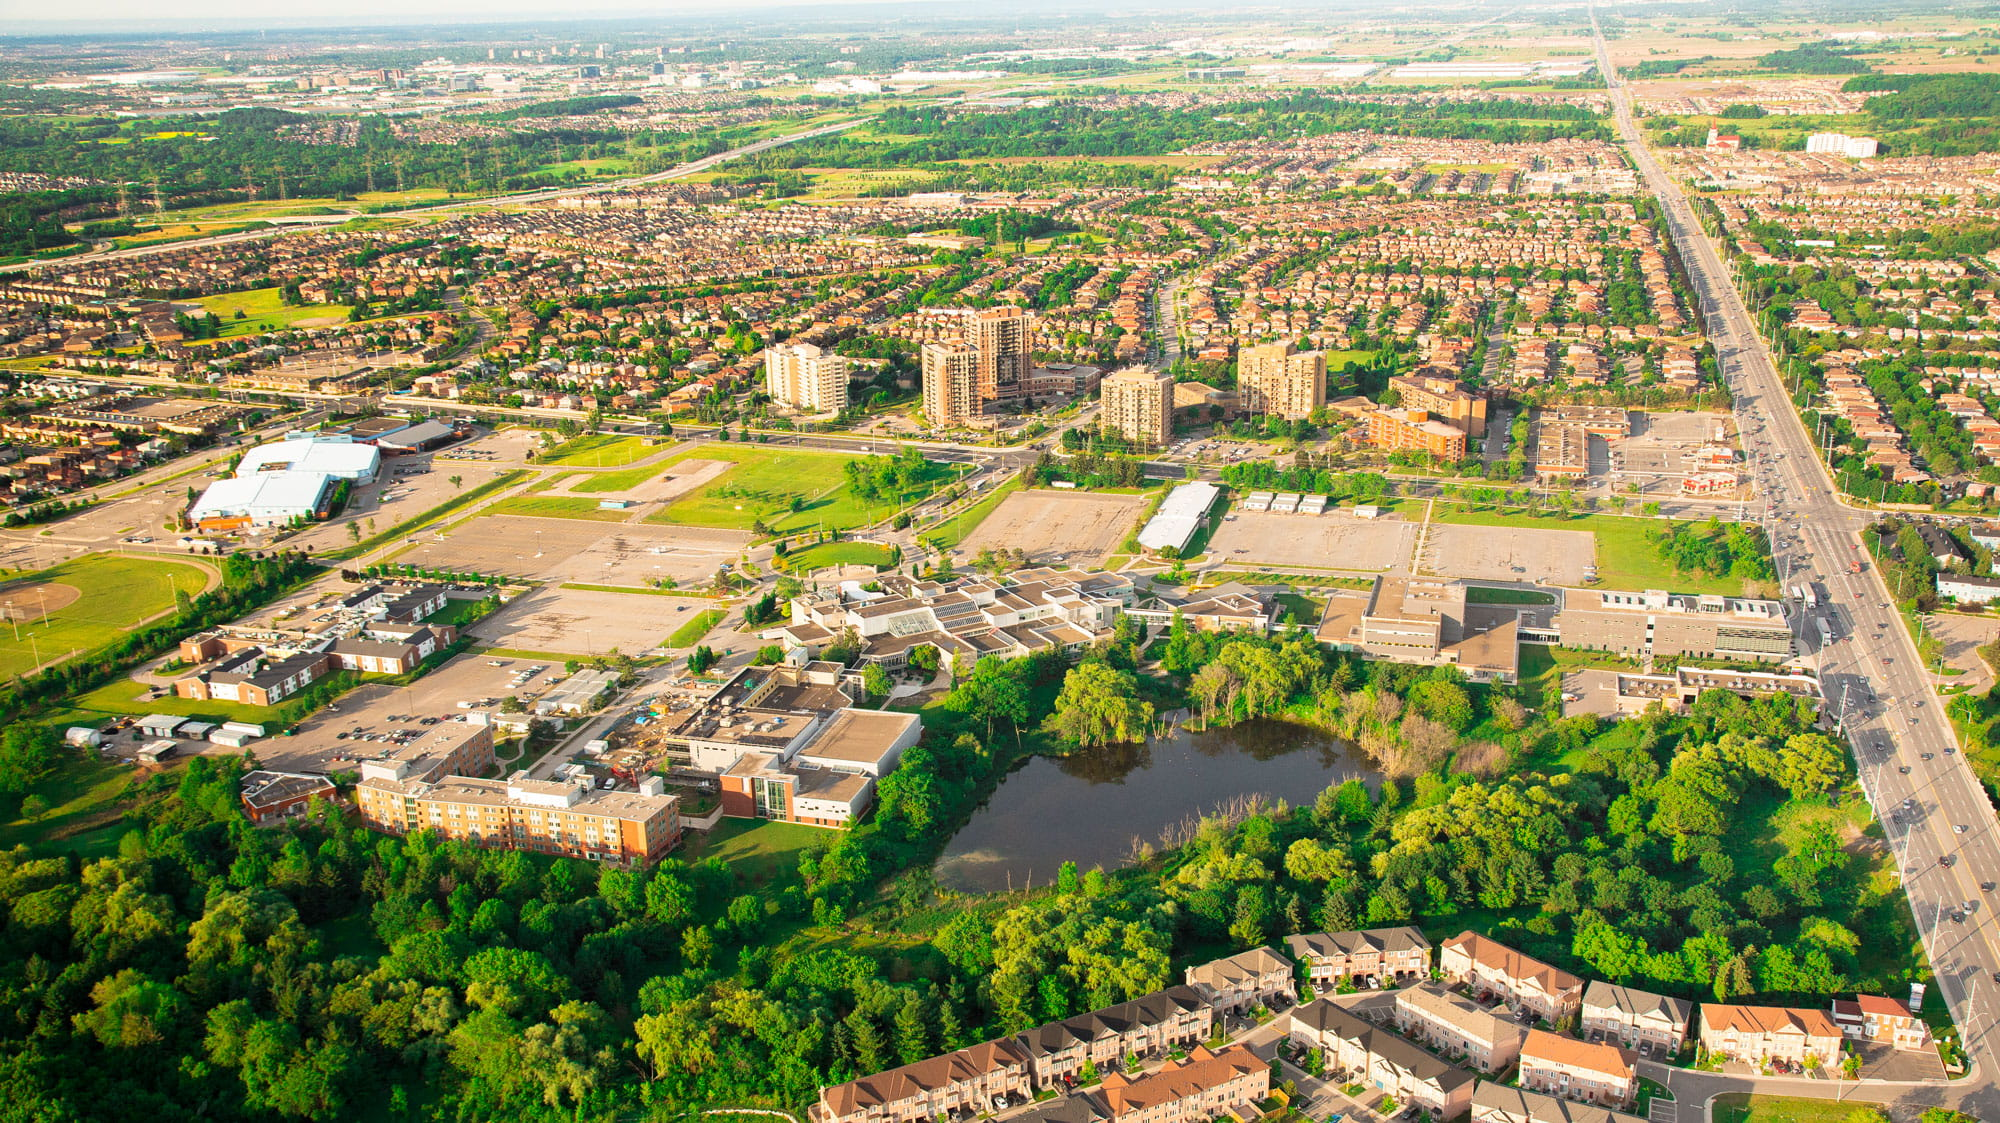 An aerial view of Brampton, Ontario.